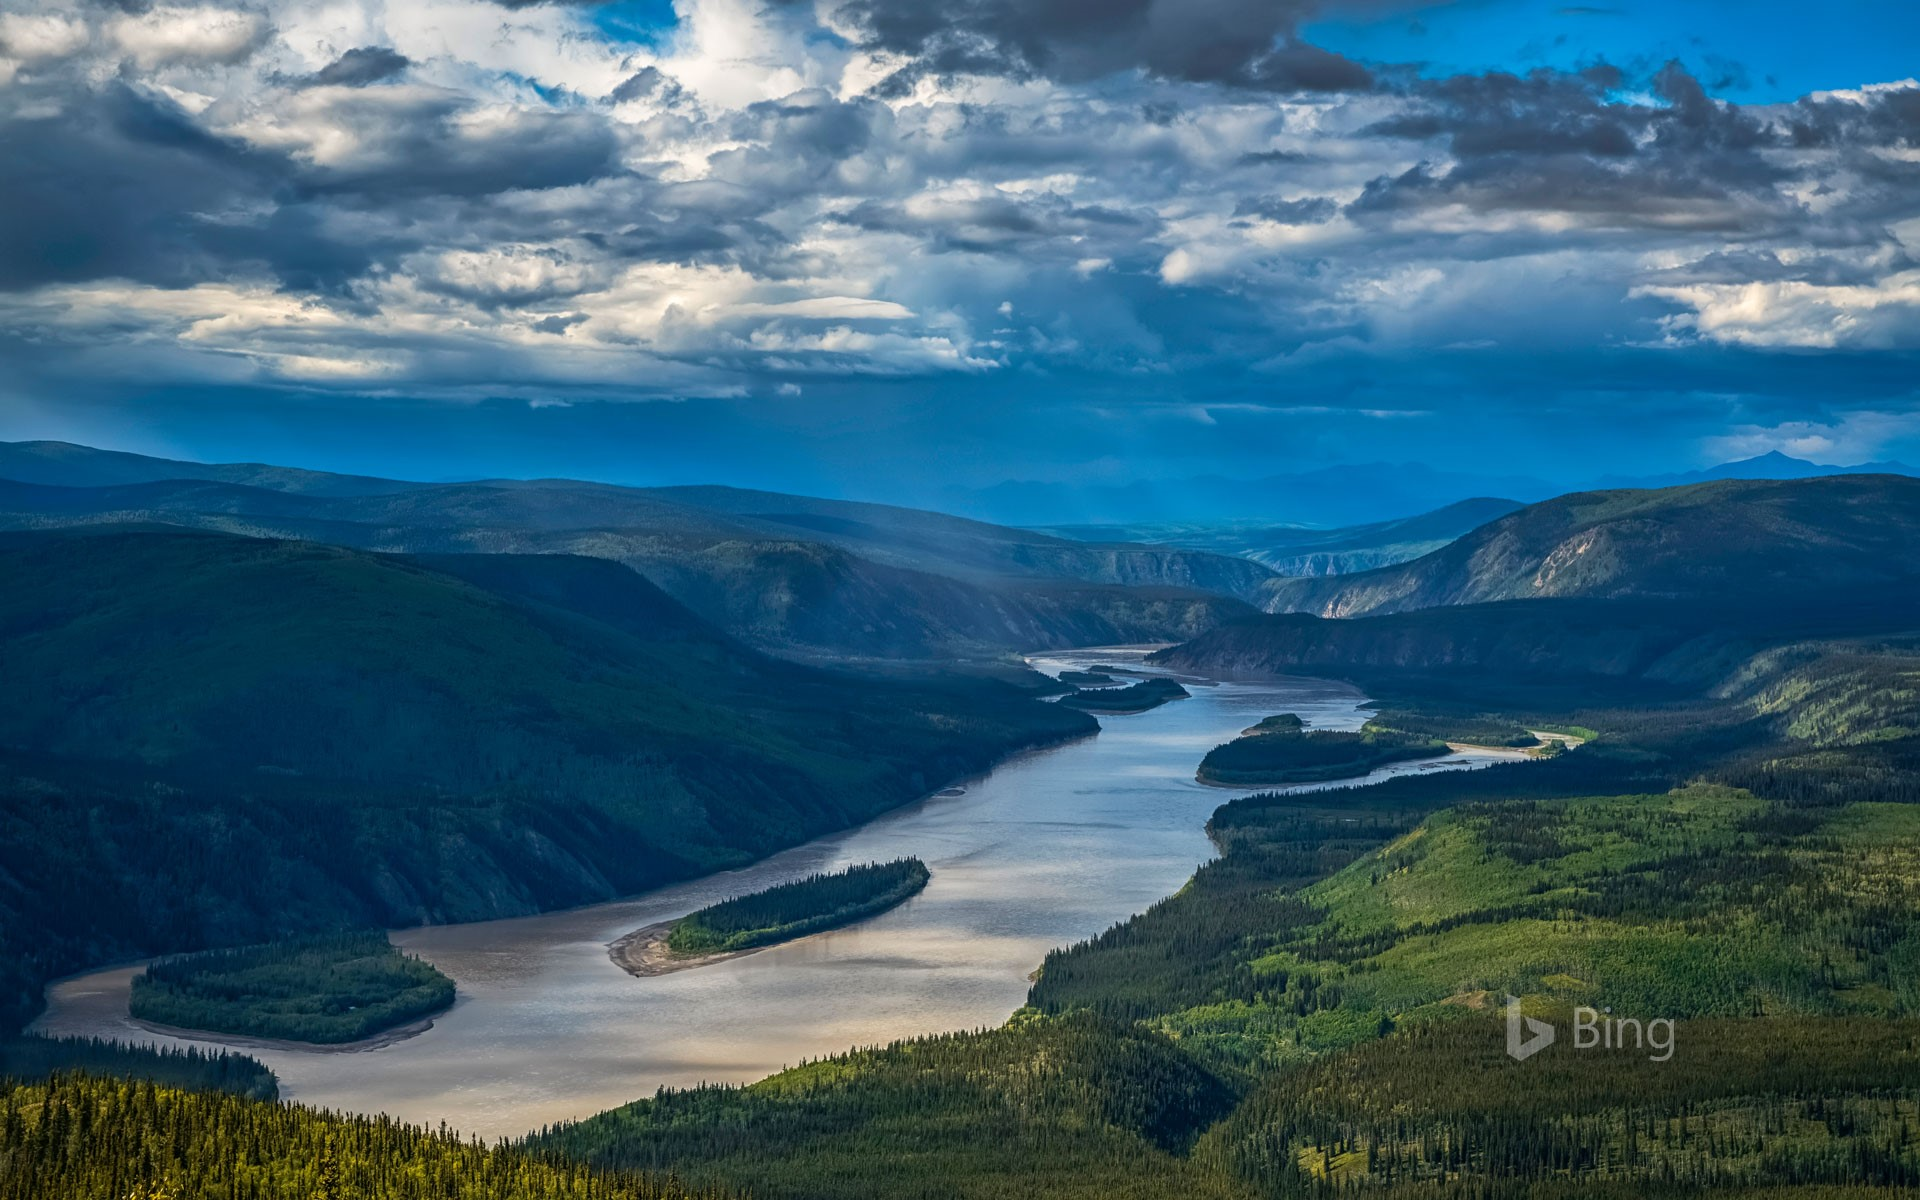 Yukon River viewed from the Midnight Dome, Dawson City, Yukon, Canada